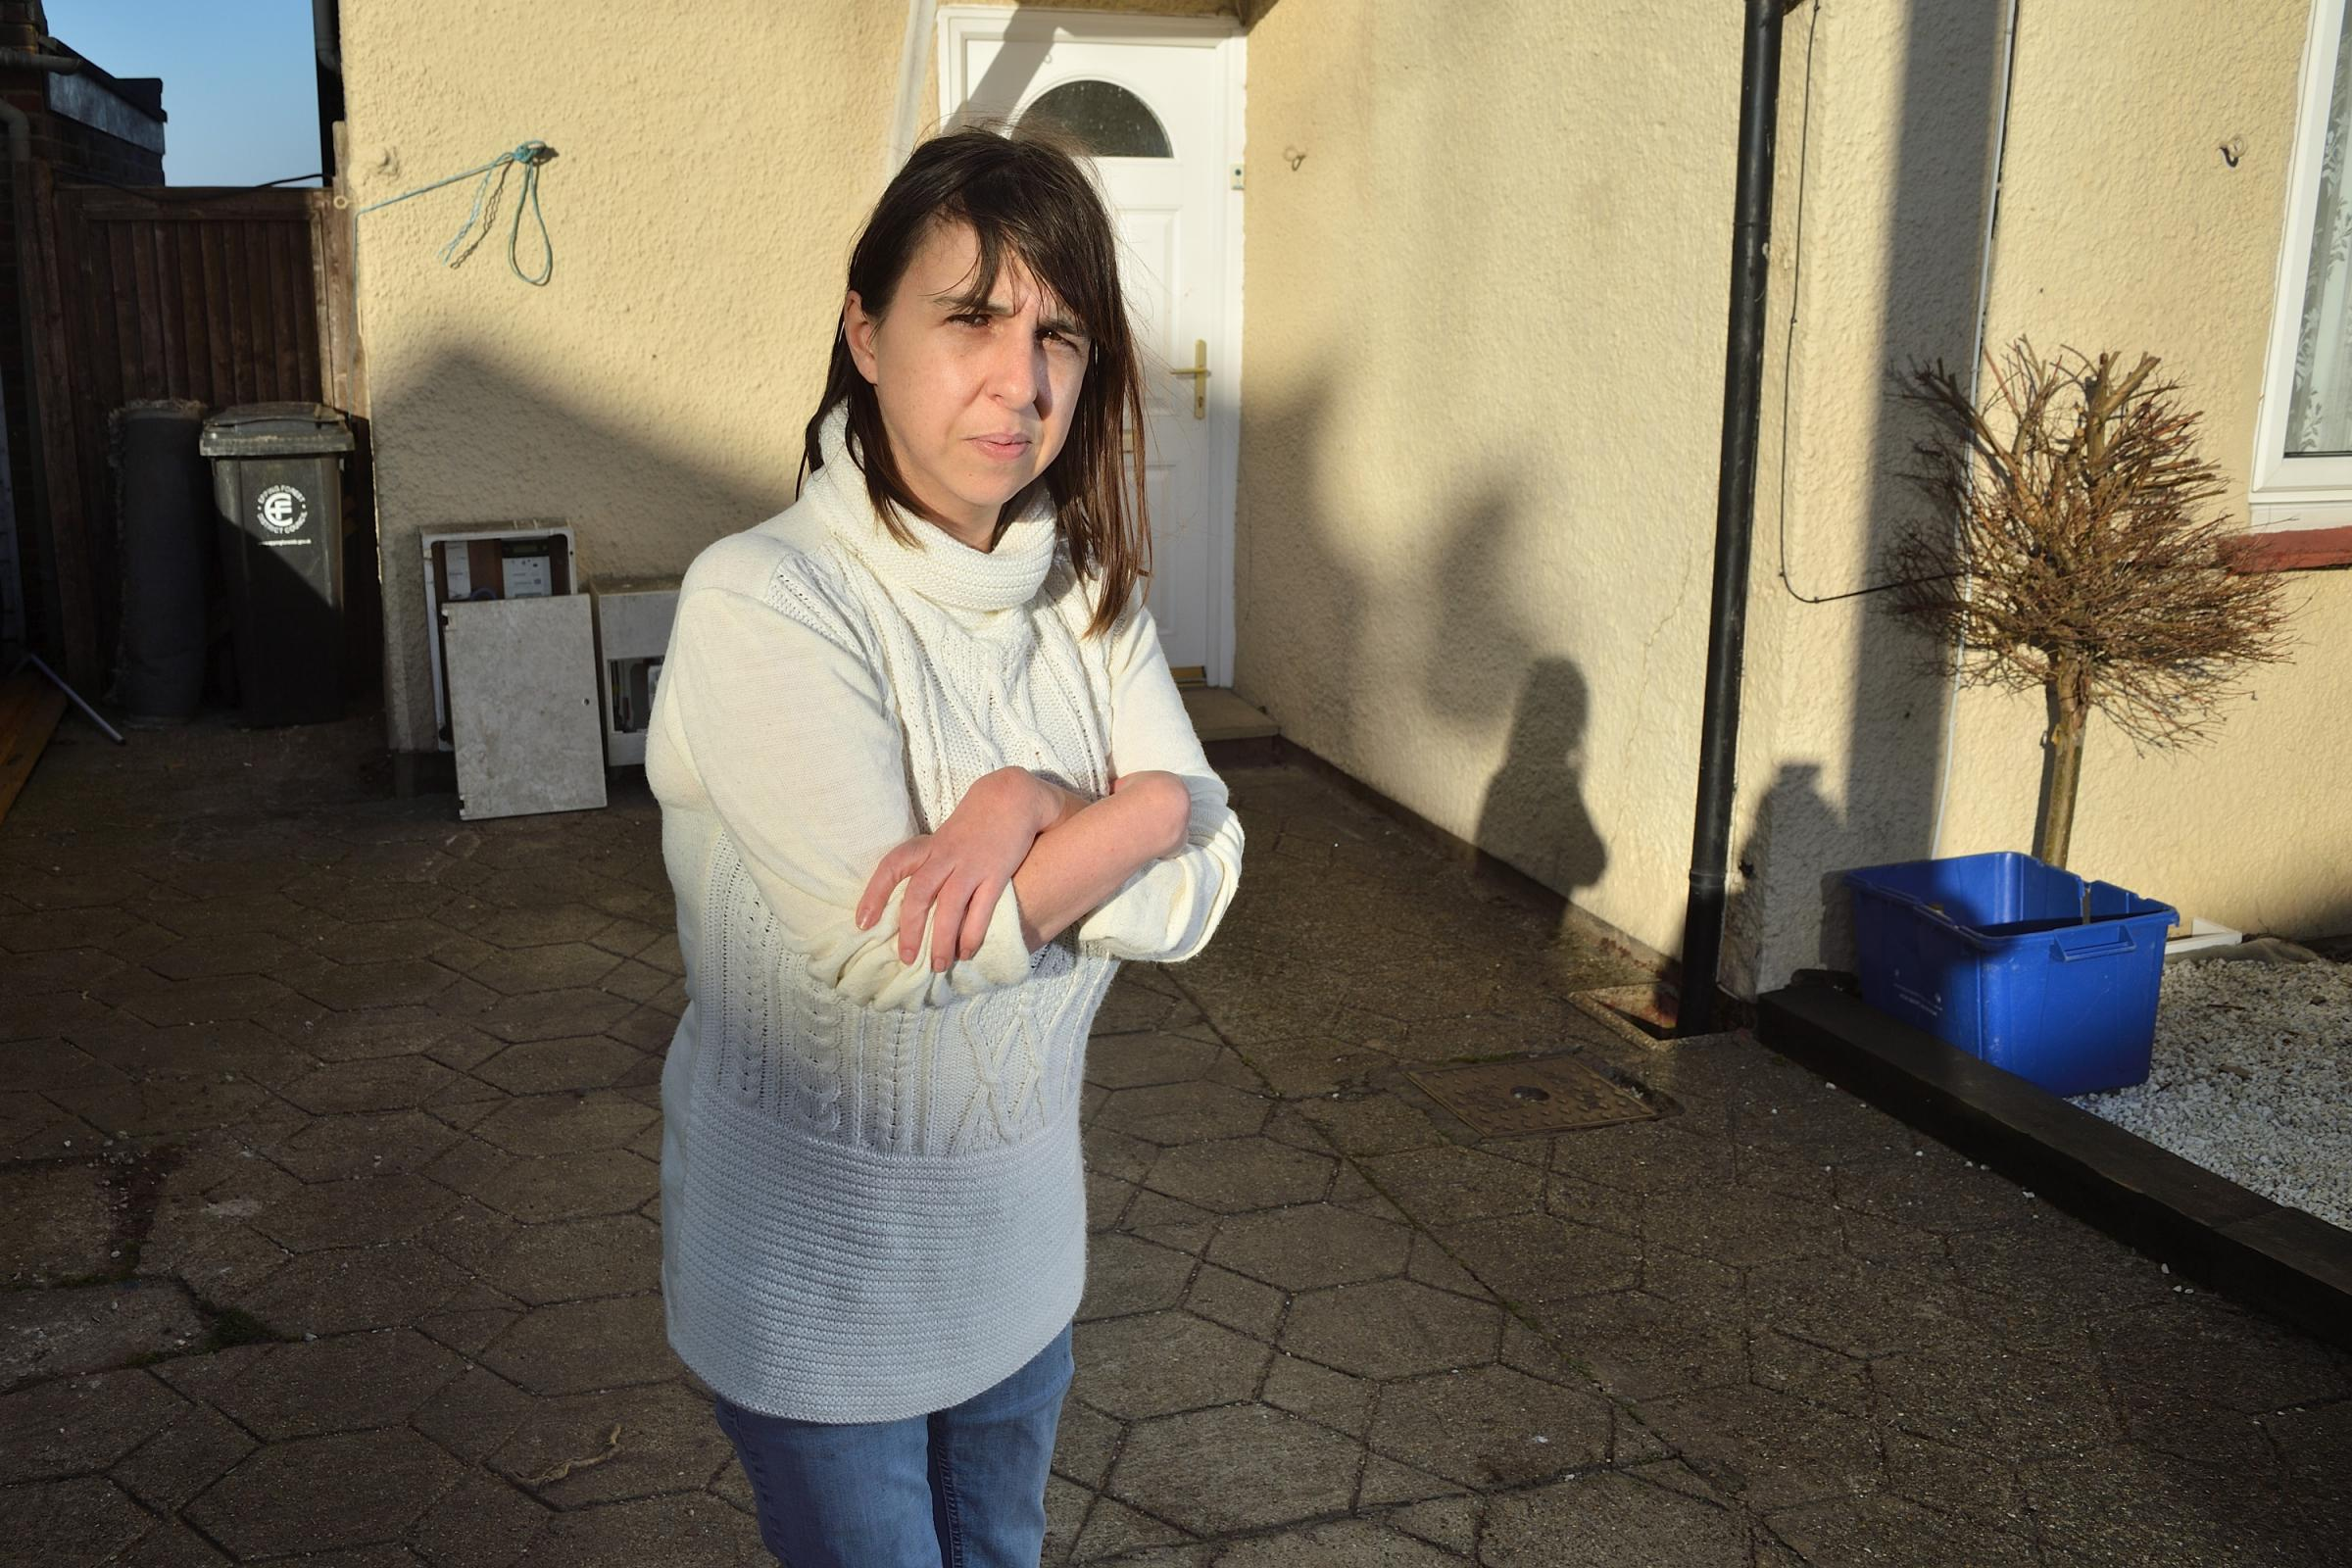 Jodi Morley has a condition which means her joints are stiff. She can barely walk, however the DVLA has just taken her mobility car away and the DWP has reduced her monthly benefits from £480 to £200. Epping Essex. (7/1/2019) EL92384_05